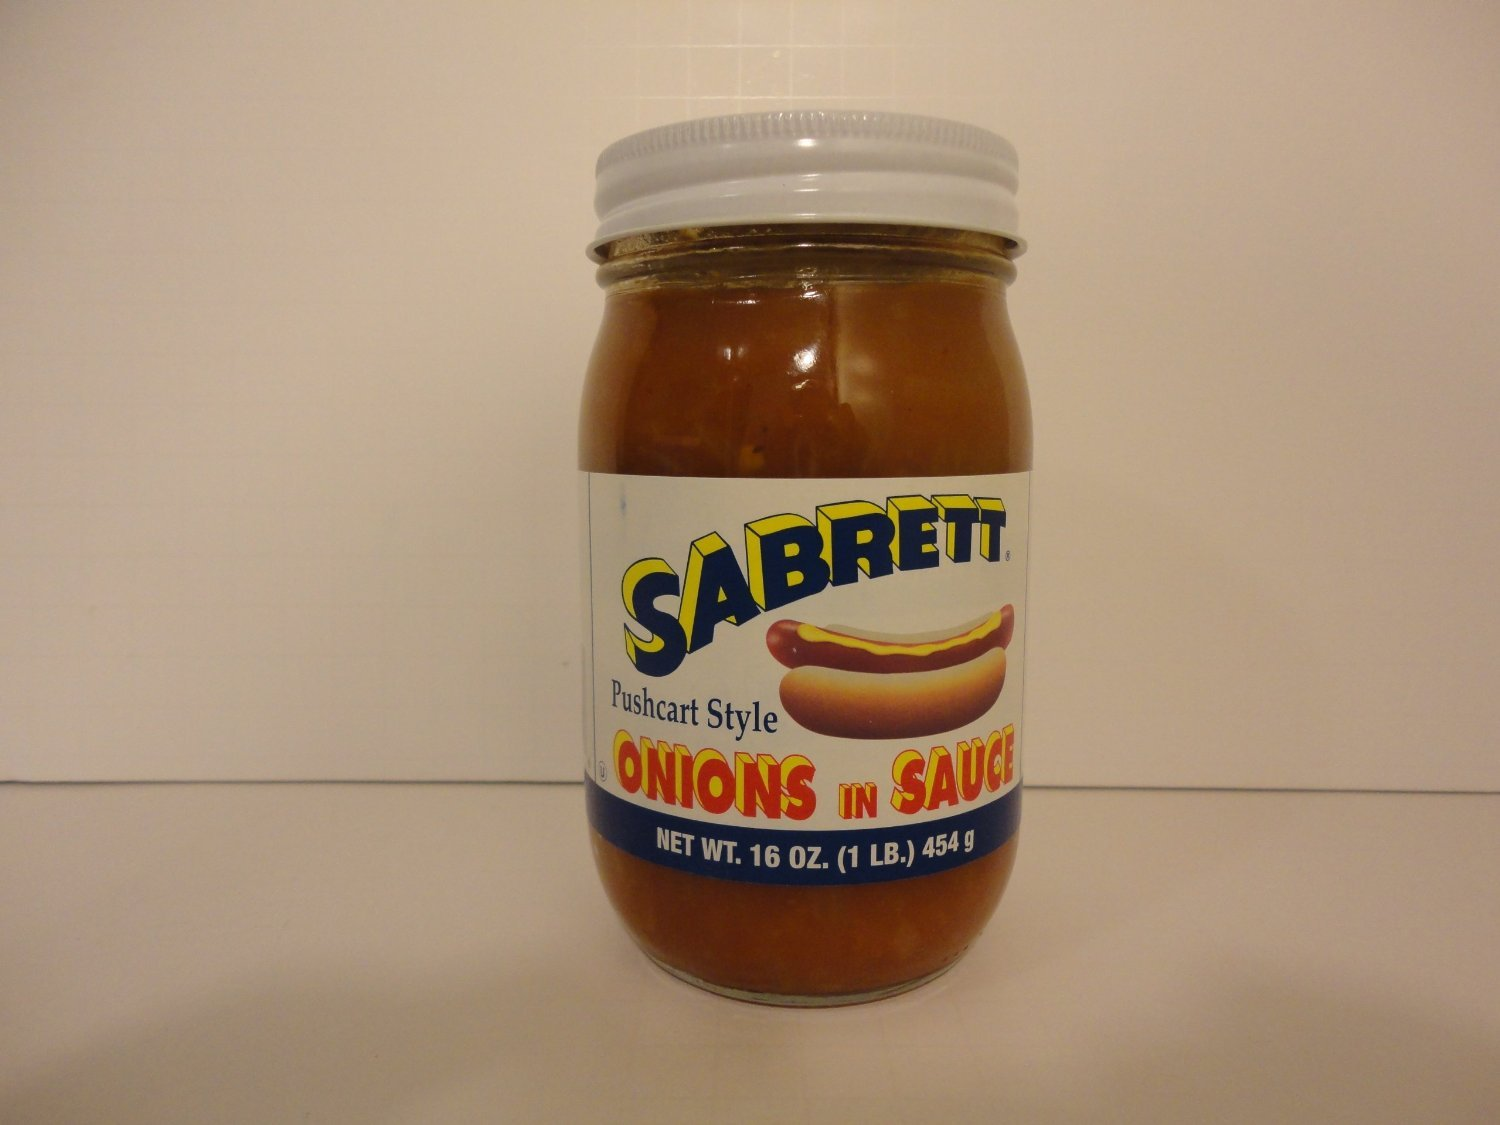 Sabrett Pushcart Style Onions In Sauce, 16 oz (4 Jars)